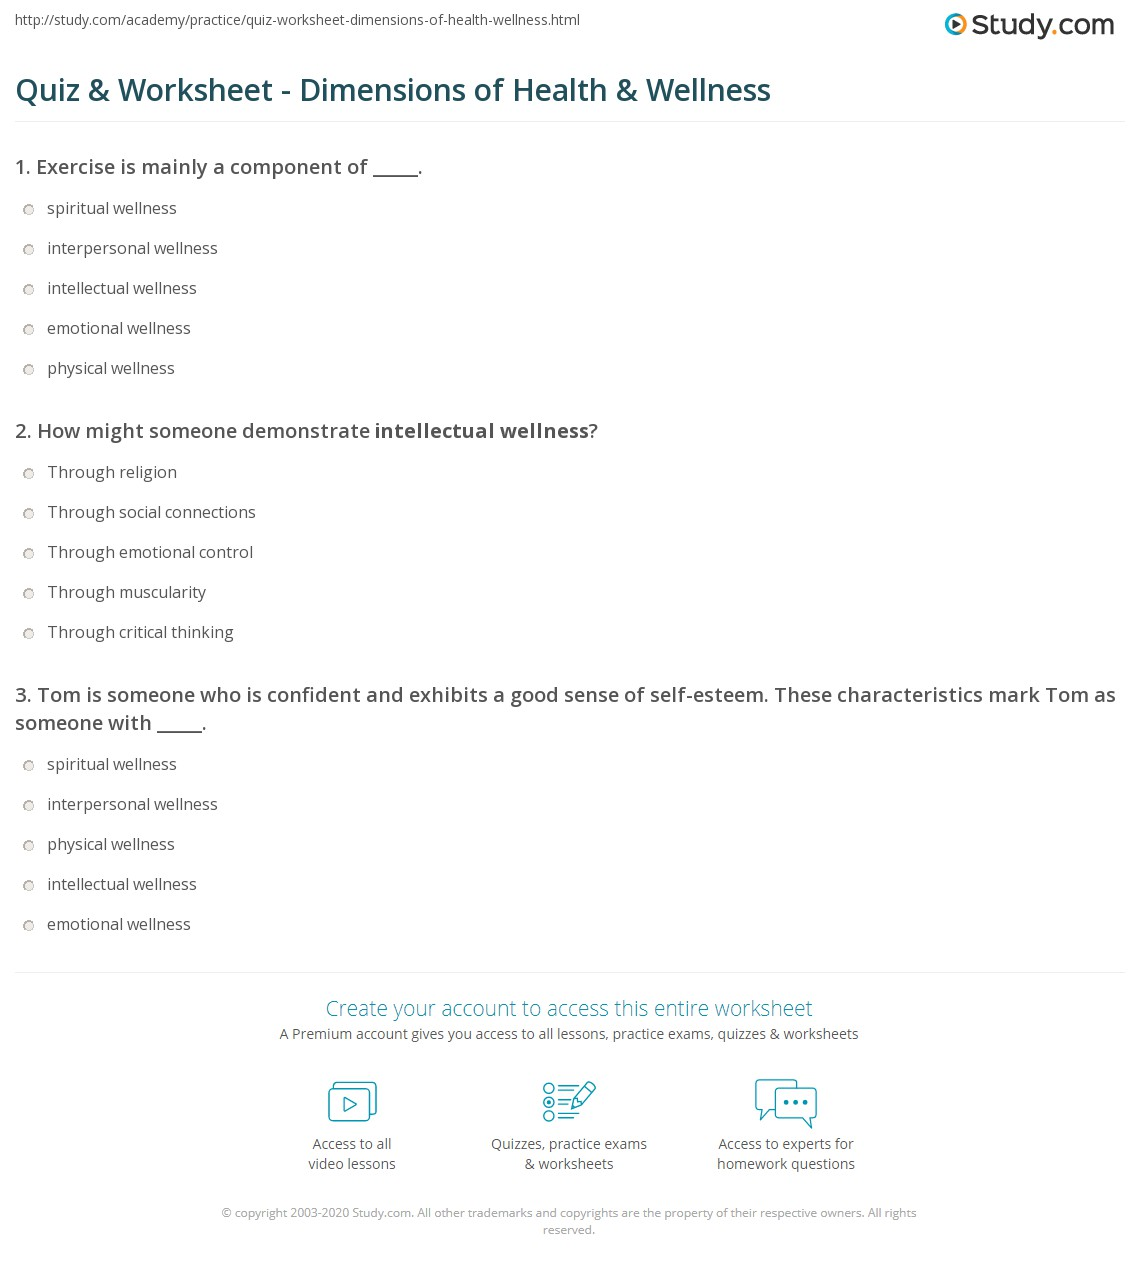 Uncategorized Wellness Wheel Worksheet nutrition and wellness worksheets ftempo printables health quiz worksheet dimensions of study com print definition